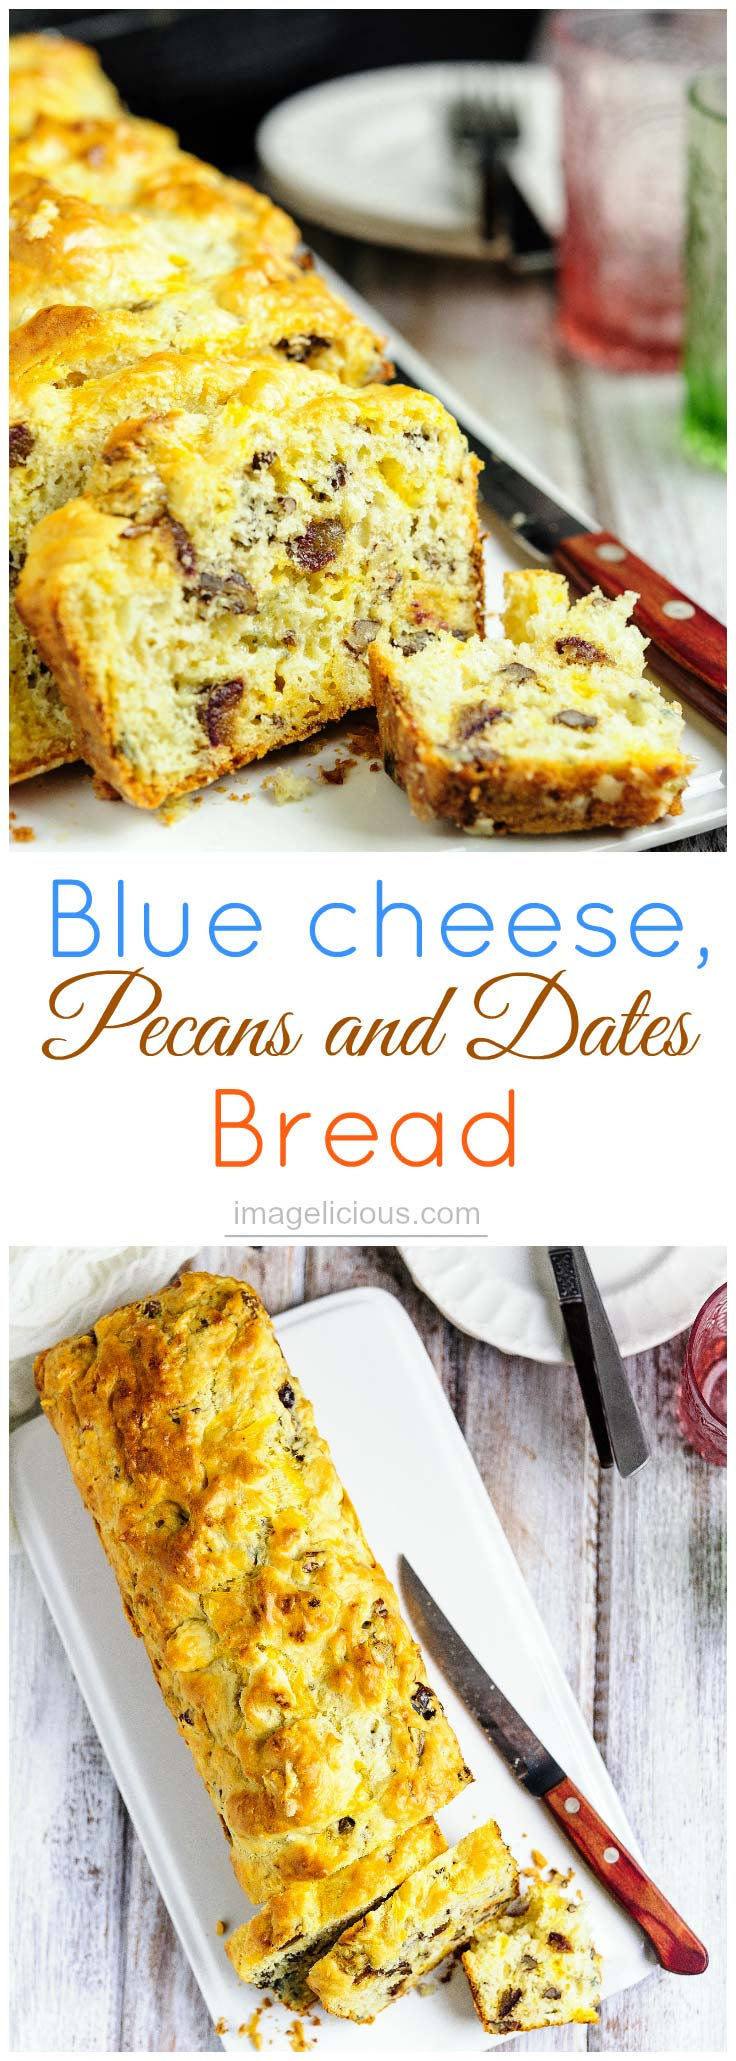 Blue cheese, pecans and dates bread is an excellent addition to a cheese platter. It's full of salty cheese, sweet dates and crunchy pecans - perfect to satisfy those sweet and salty cravings | Imagelicious